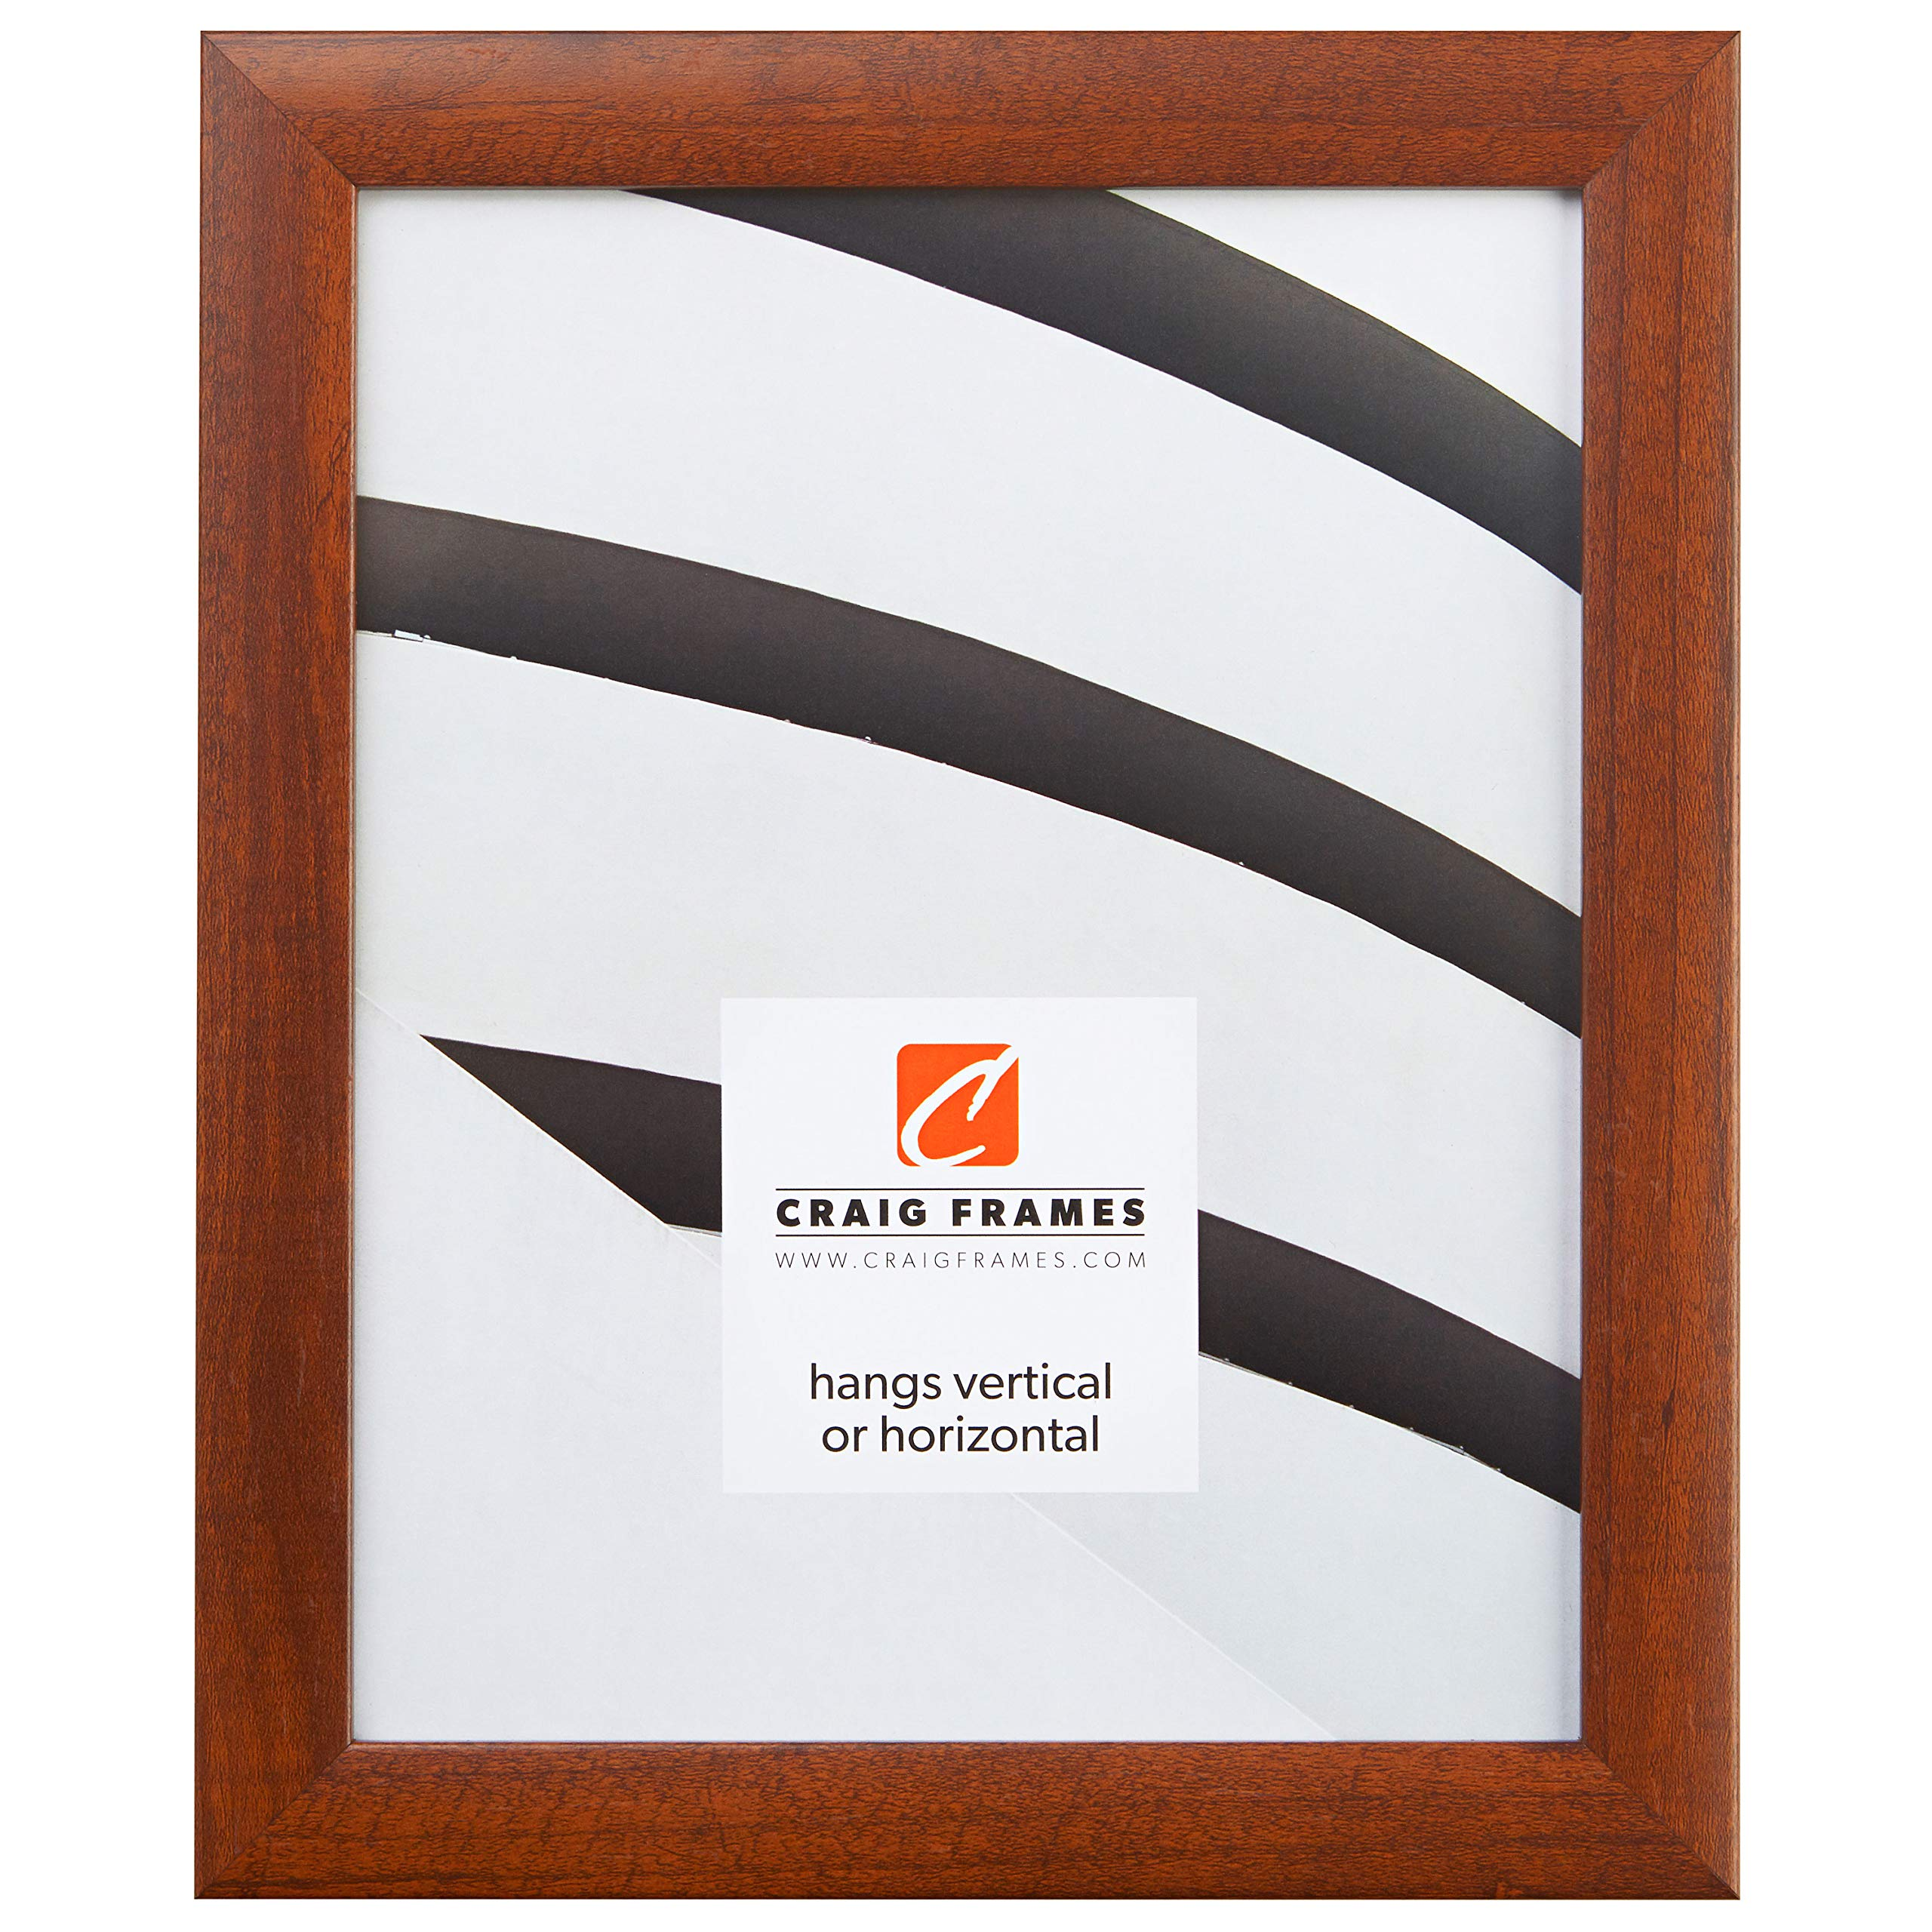 Craig Frames 23247616 20 x 28 Inch Picture Frame, Smooth Wood Grain Finish, 1-Inch Wide, Walnut Brown by Craig Frames